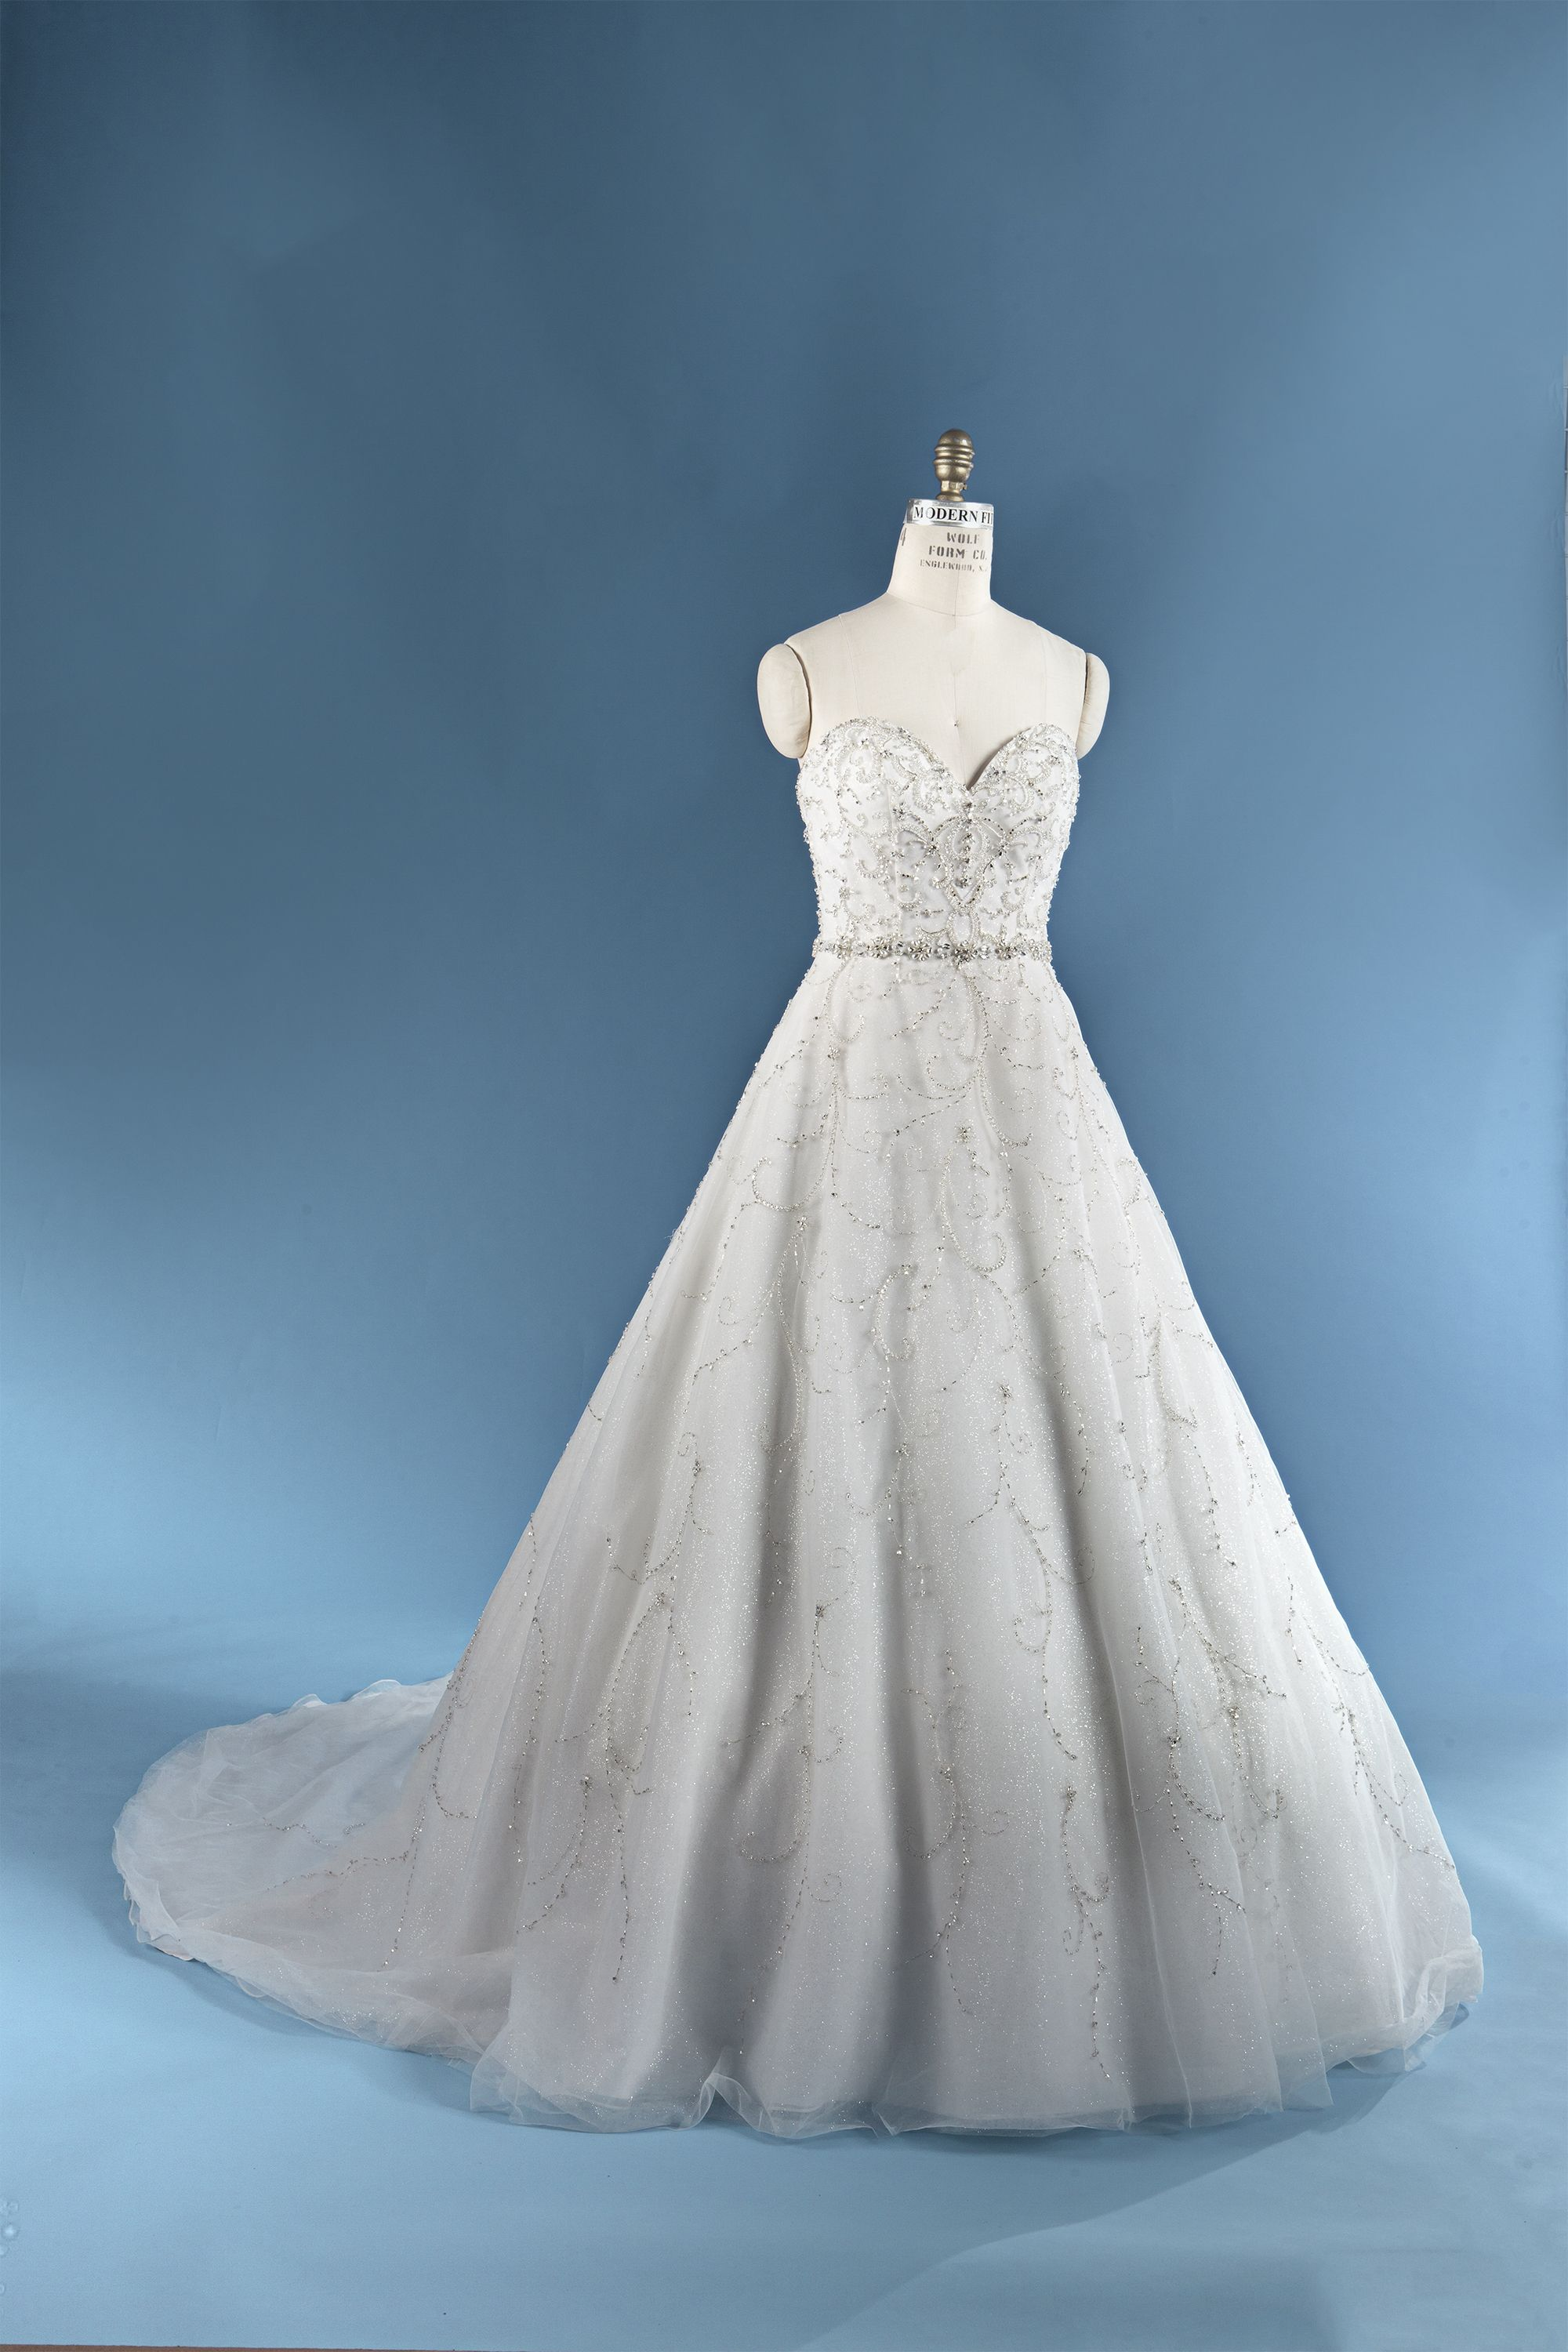 This Timeless 2016 Alfred Angelo Cinderella Dress Is Fit For A Modern Day Princess Disney Wedding Gowns Disney Inspired Wedding Dresses Disney Princess Wedding [ 3000 x 2000 Pixel ]